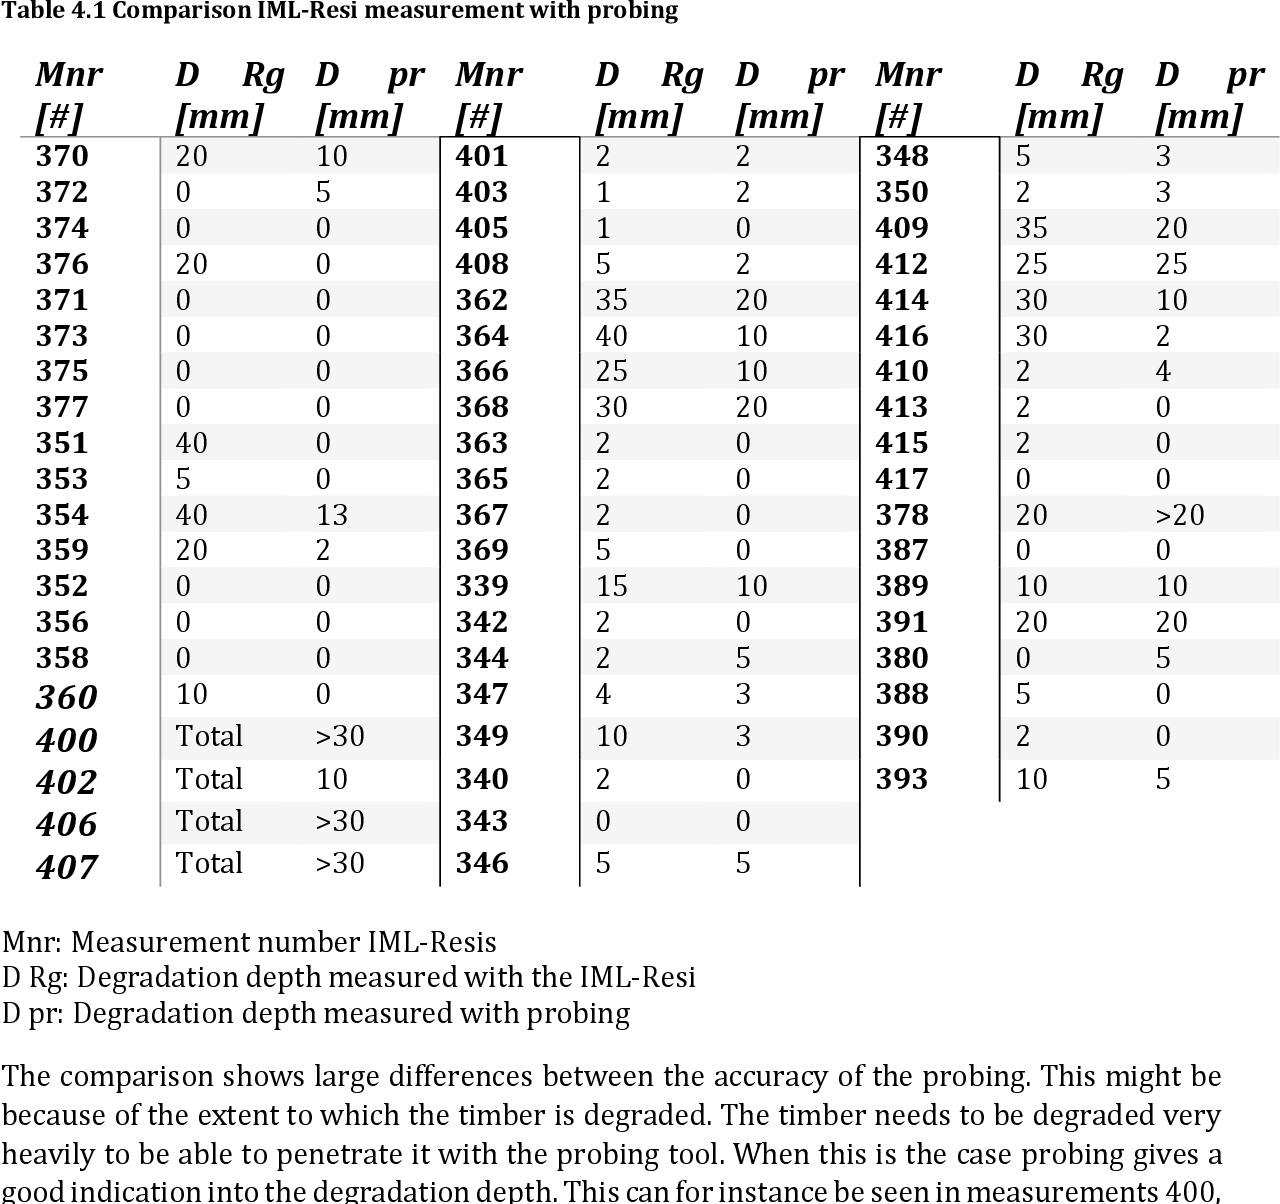 Table 4.1 Comparison IML-Resi measurement with probing